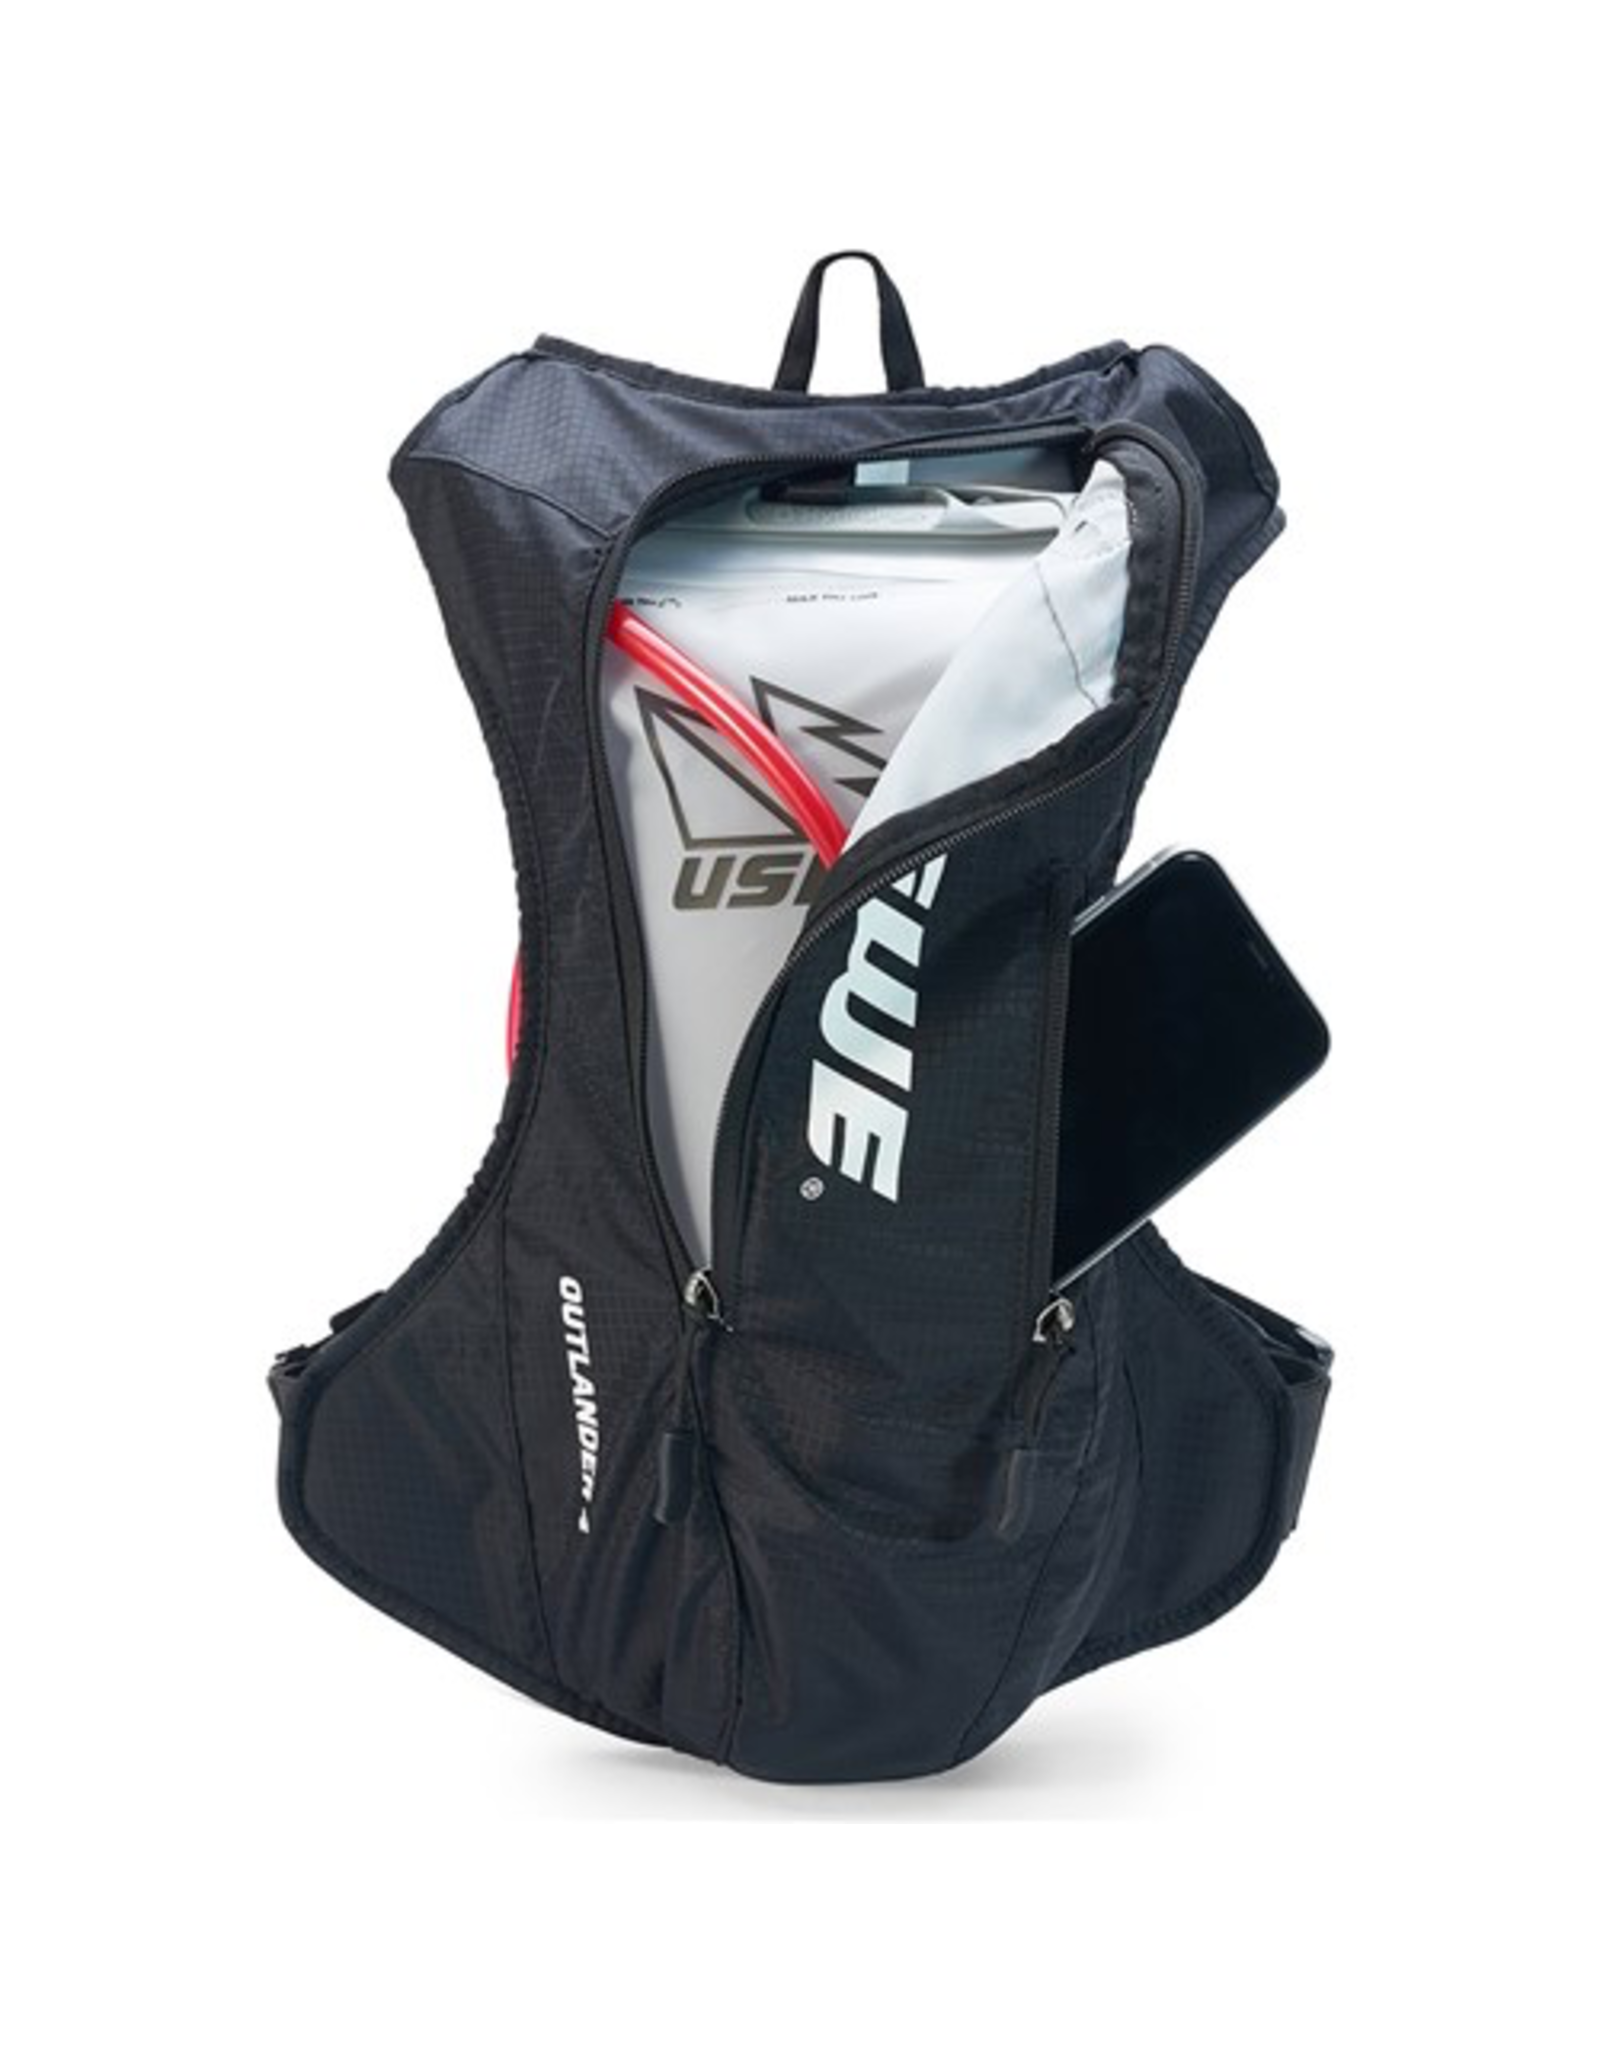 USWE HYDRATION BAG USWE 20 OUTLANDER 4 PACK 2.5/3.0L SHAPE SHIFT BLACK